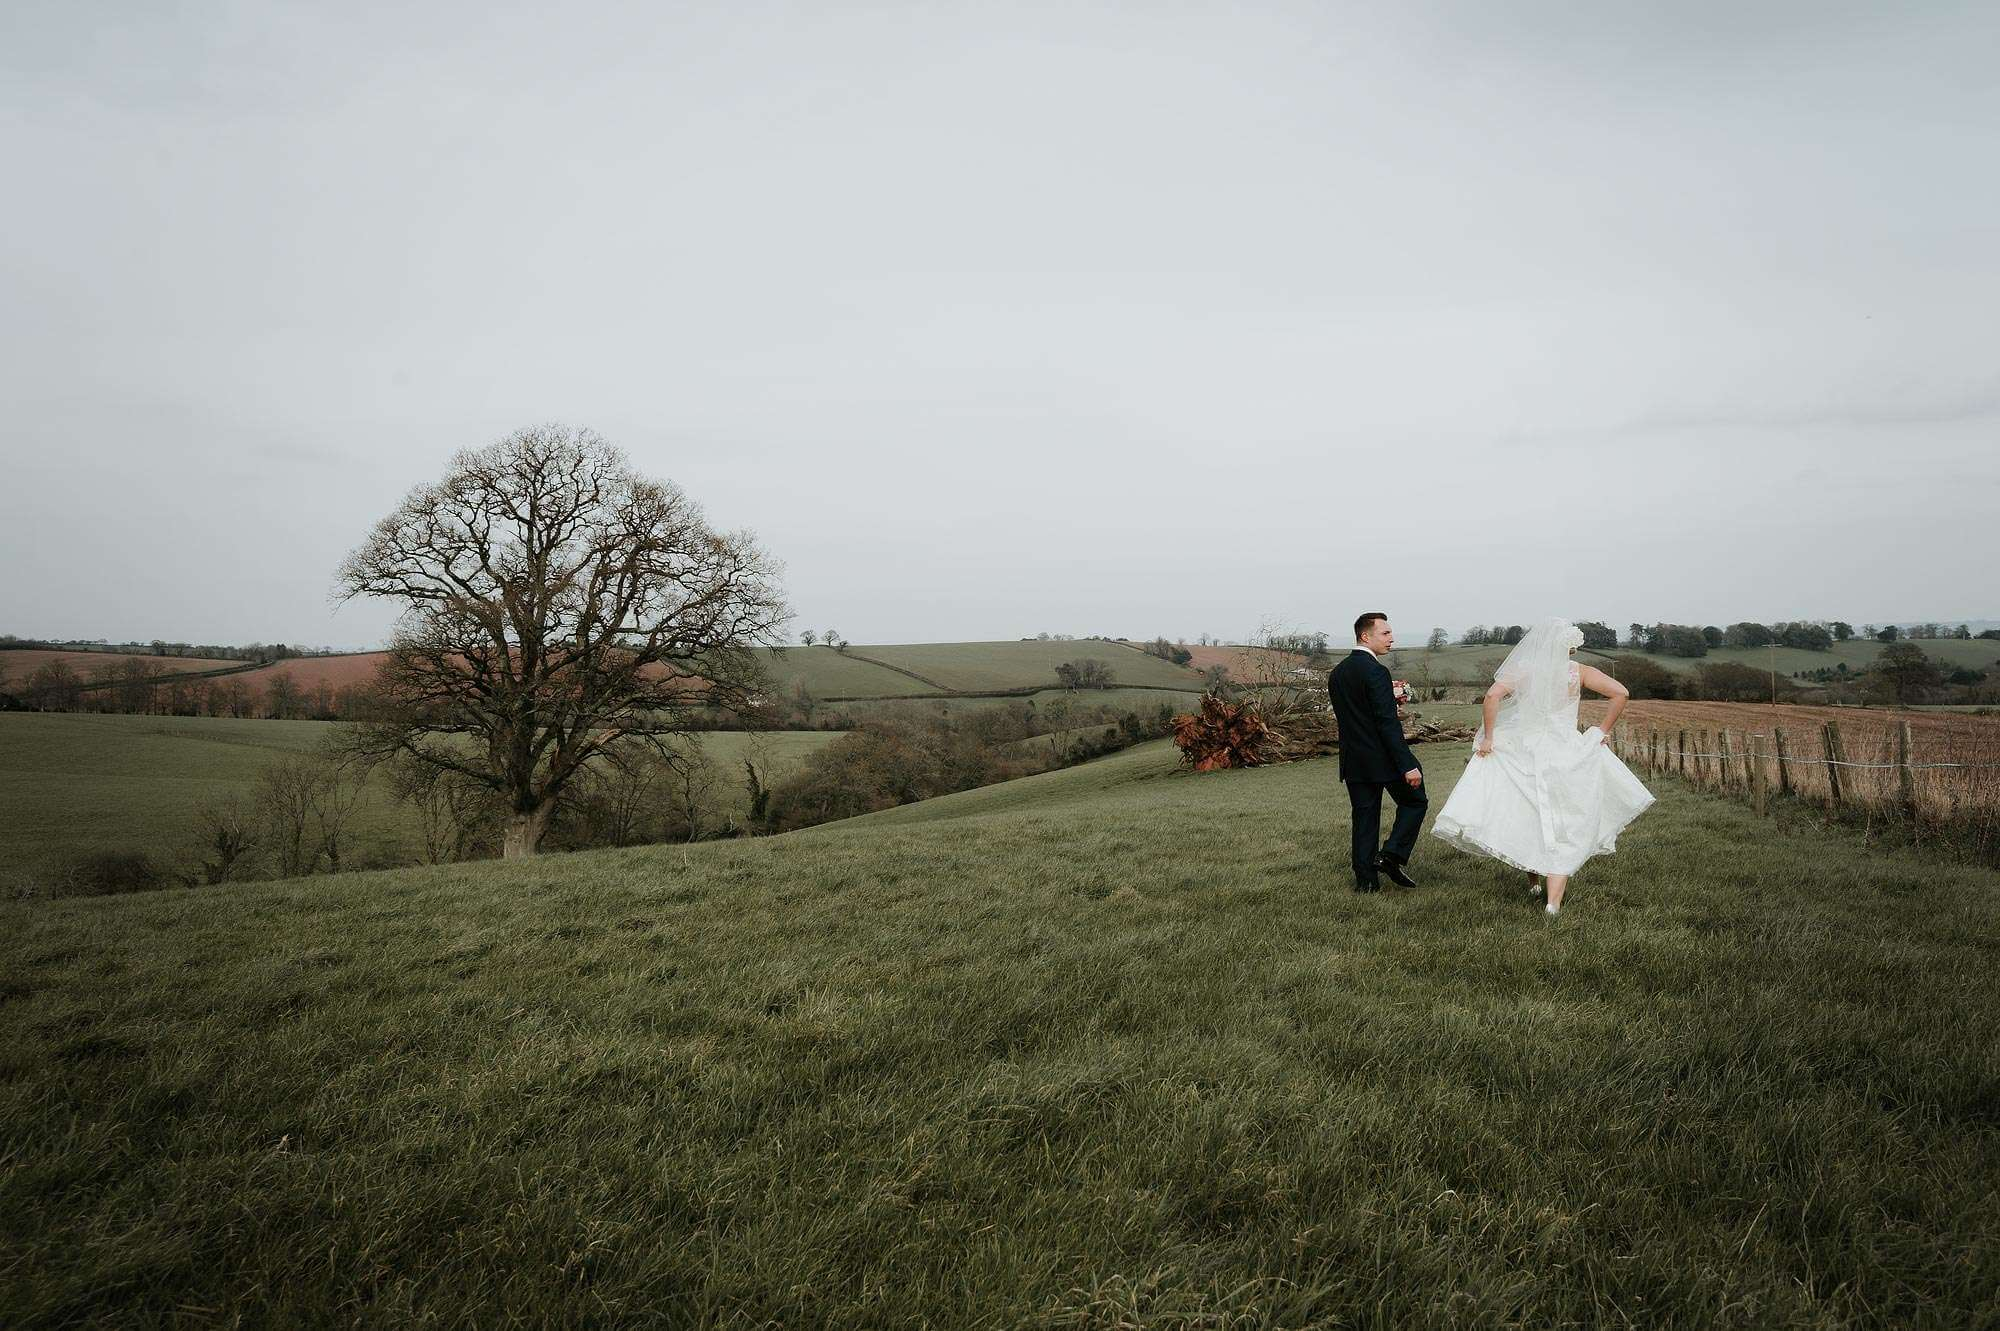 Haldon farm wedding couple walking in the field near Exeter